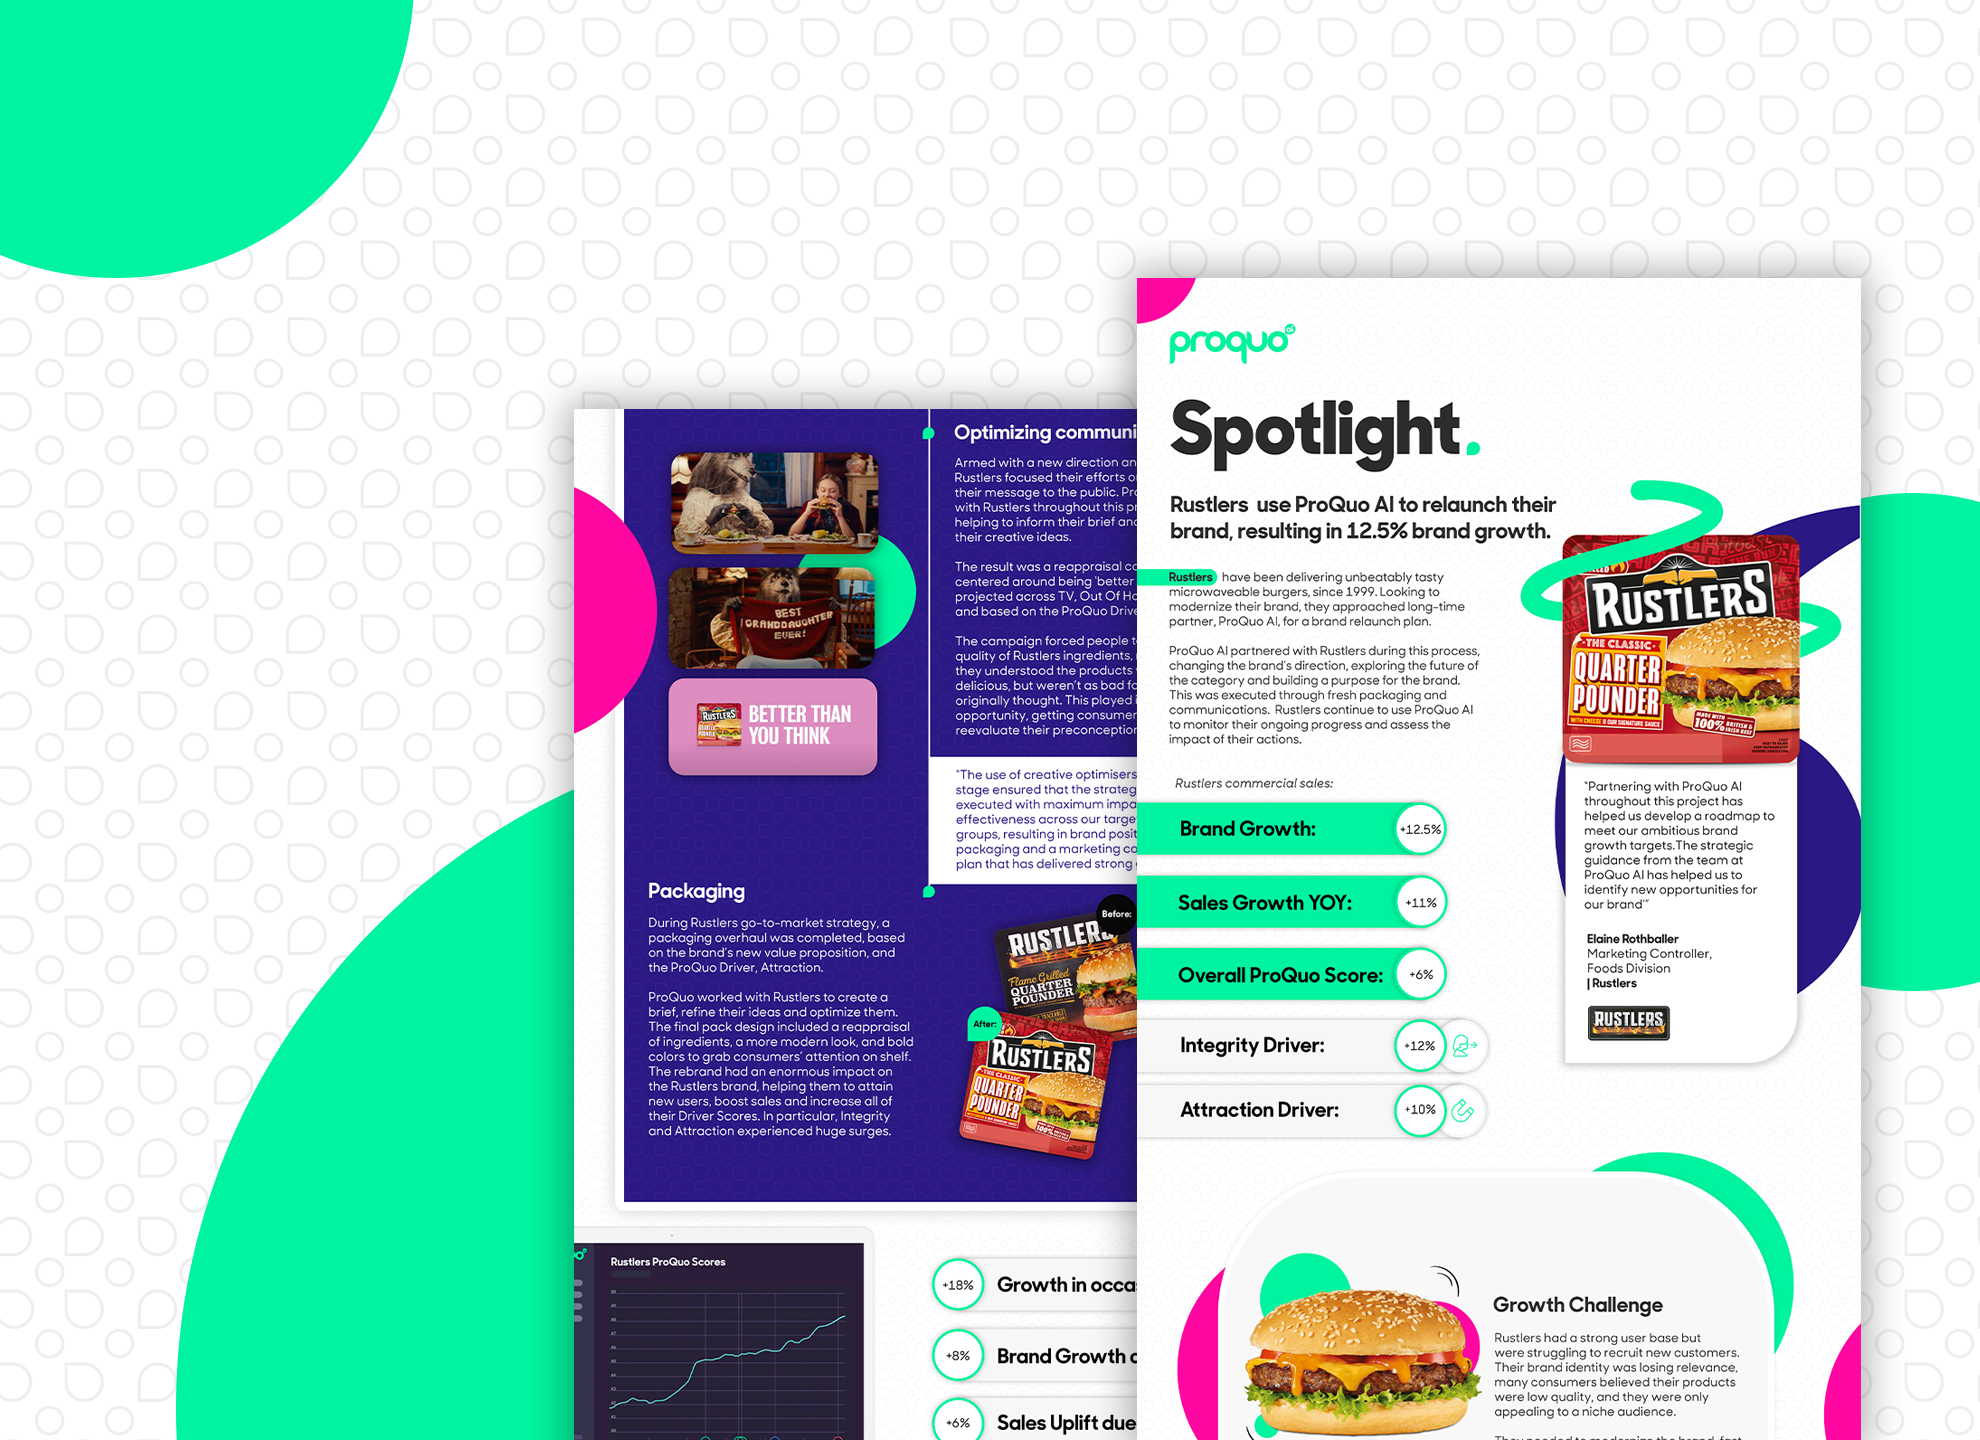 Brand Rustlers case study on how ProQuo helped them grow their brand